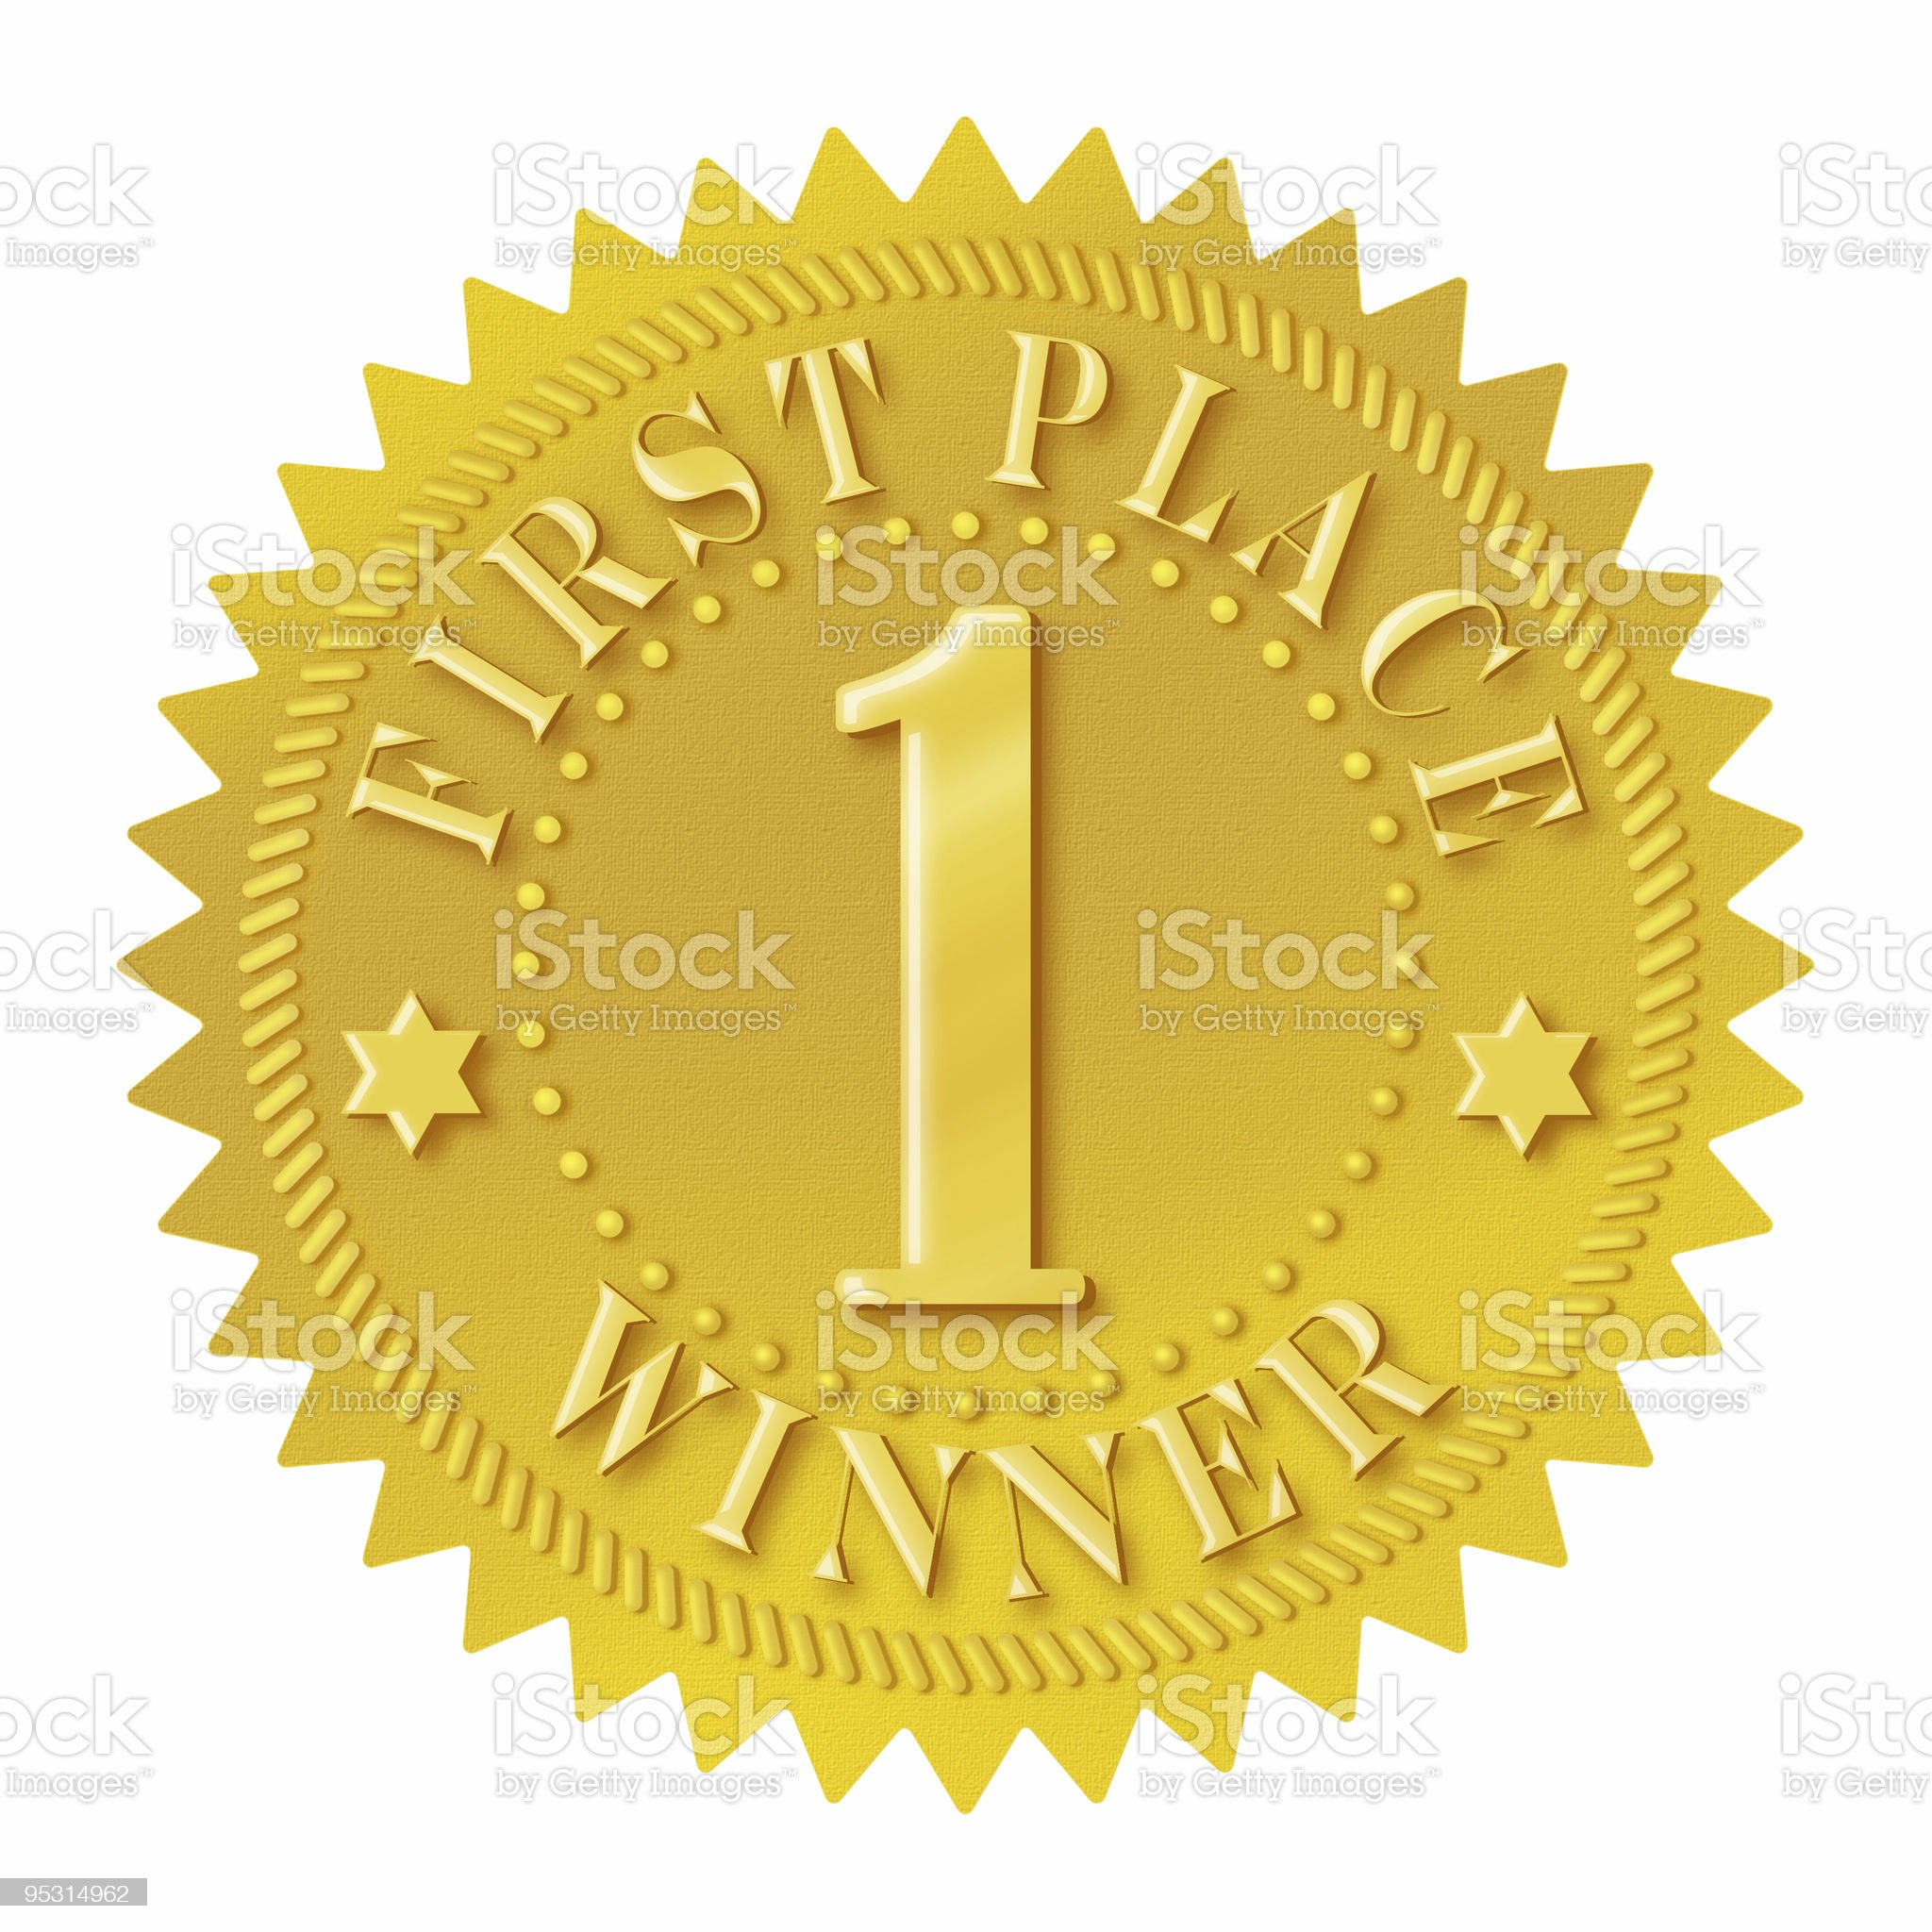 First place winner seal royalty-free stock photo